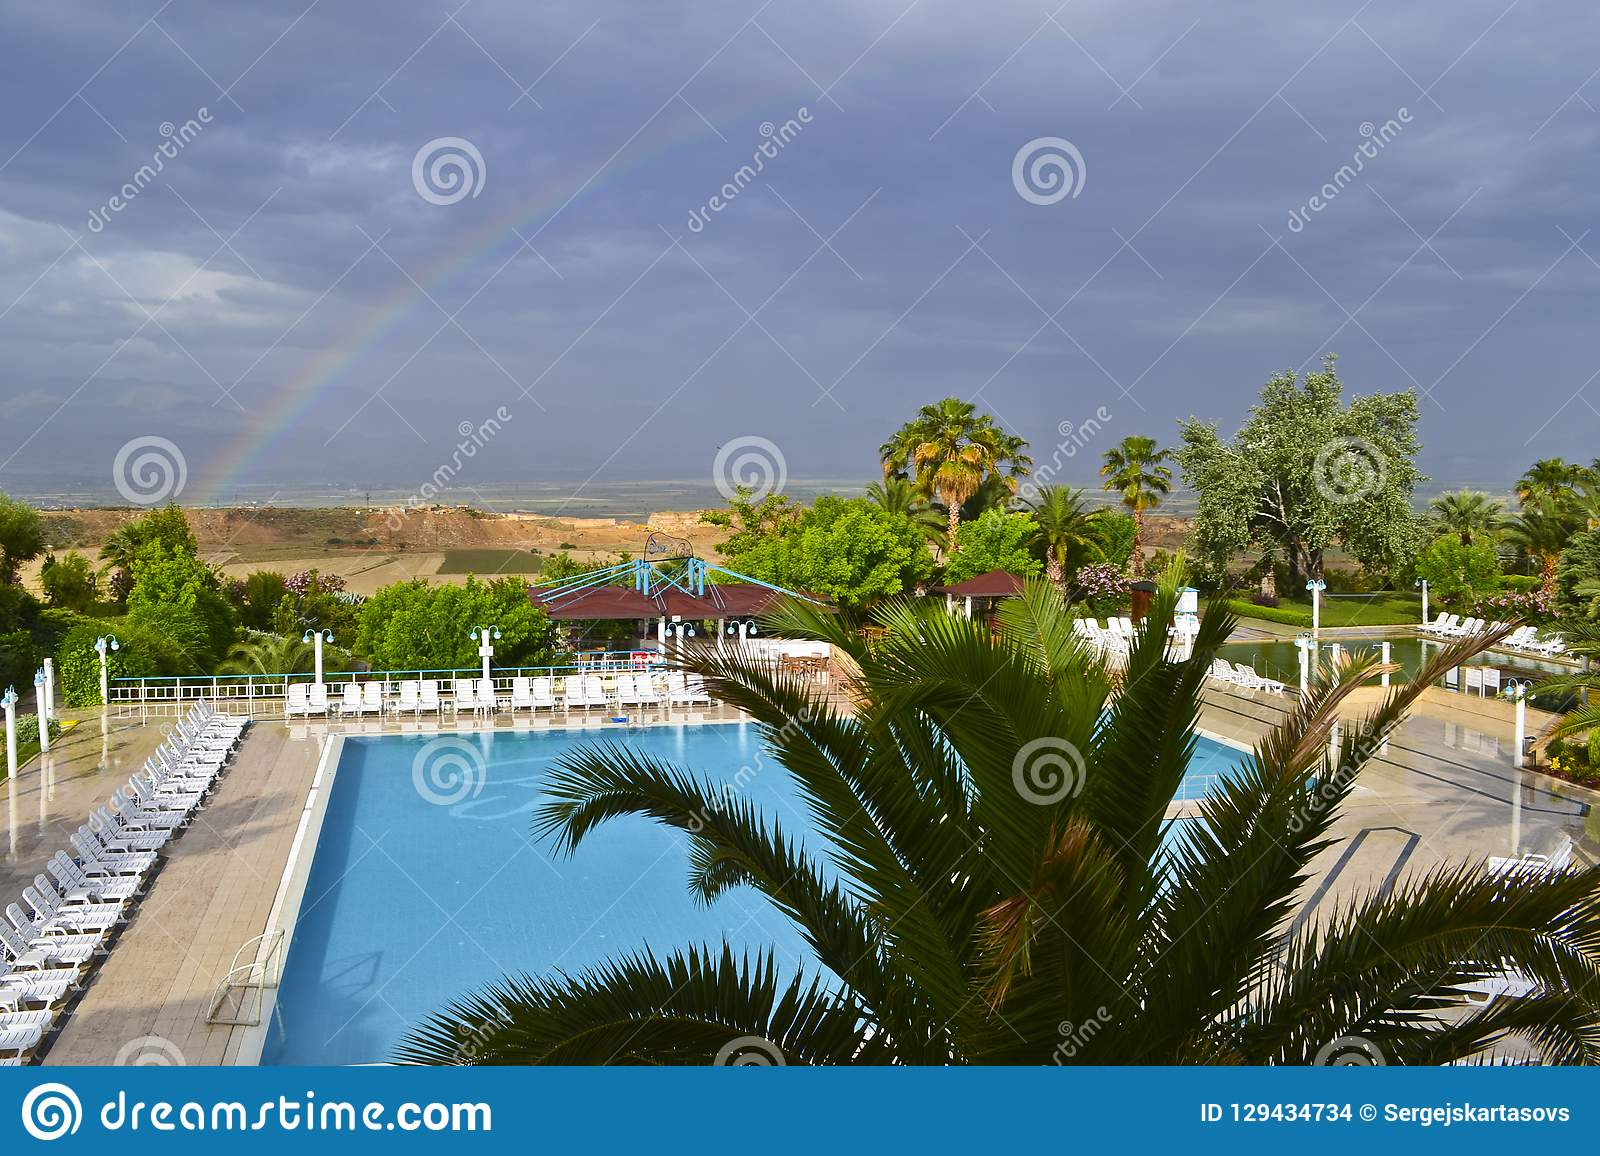 A view of a rural landscape, swimming pool and rainbow